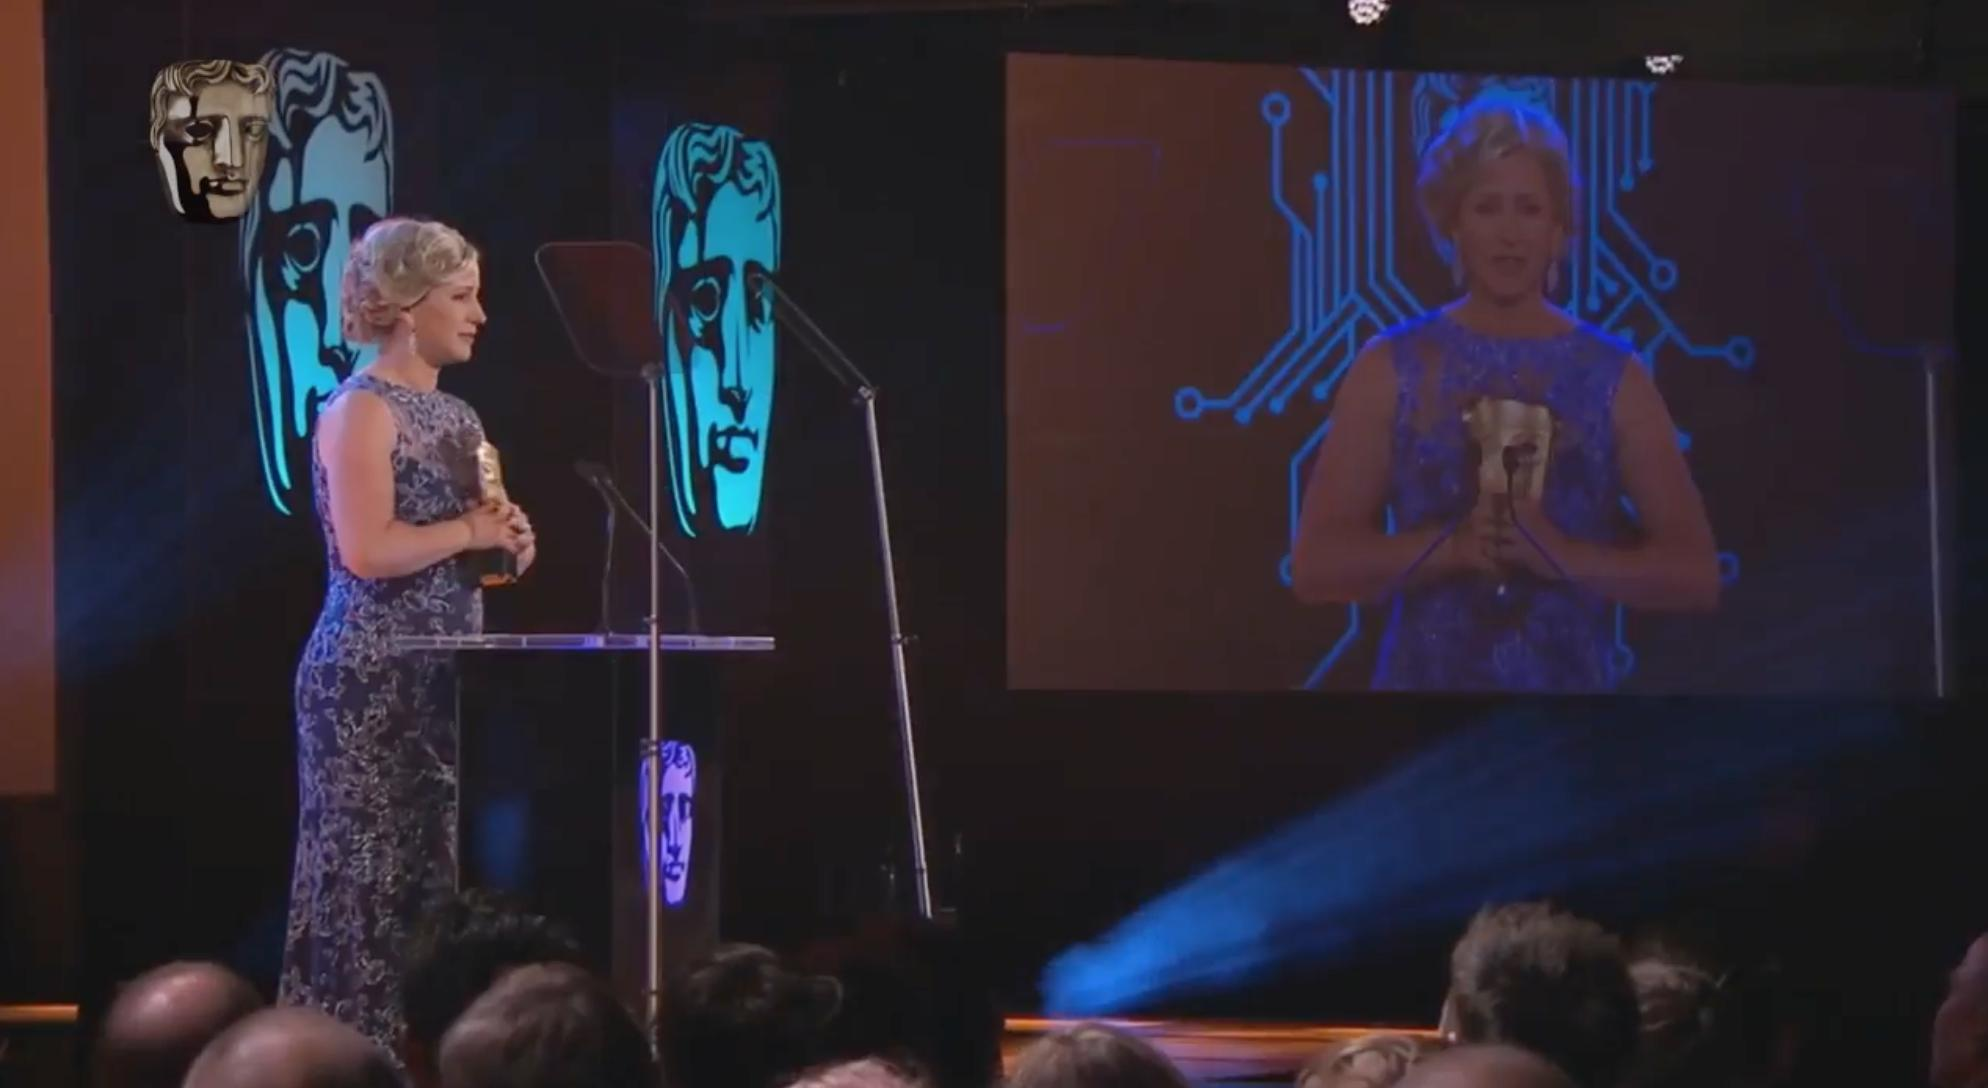 Cissy Jones accepts the BAFTA award for Best Performance in a Video Game